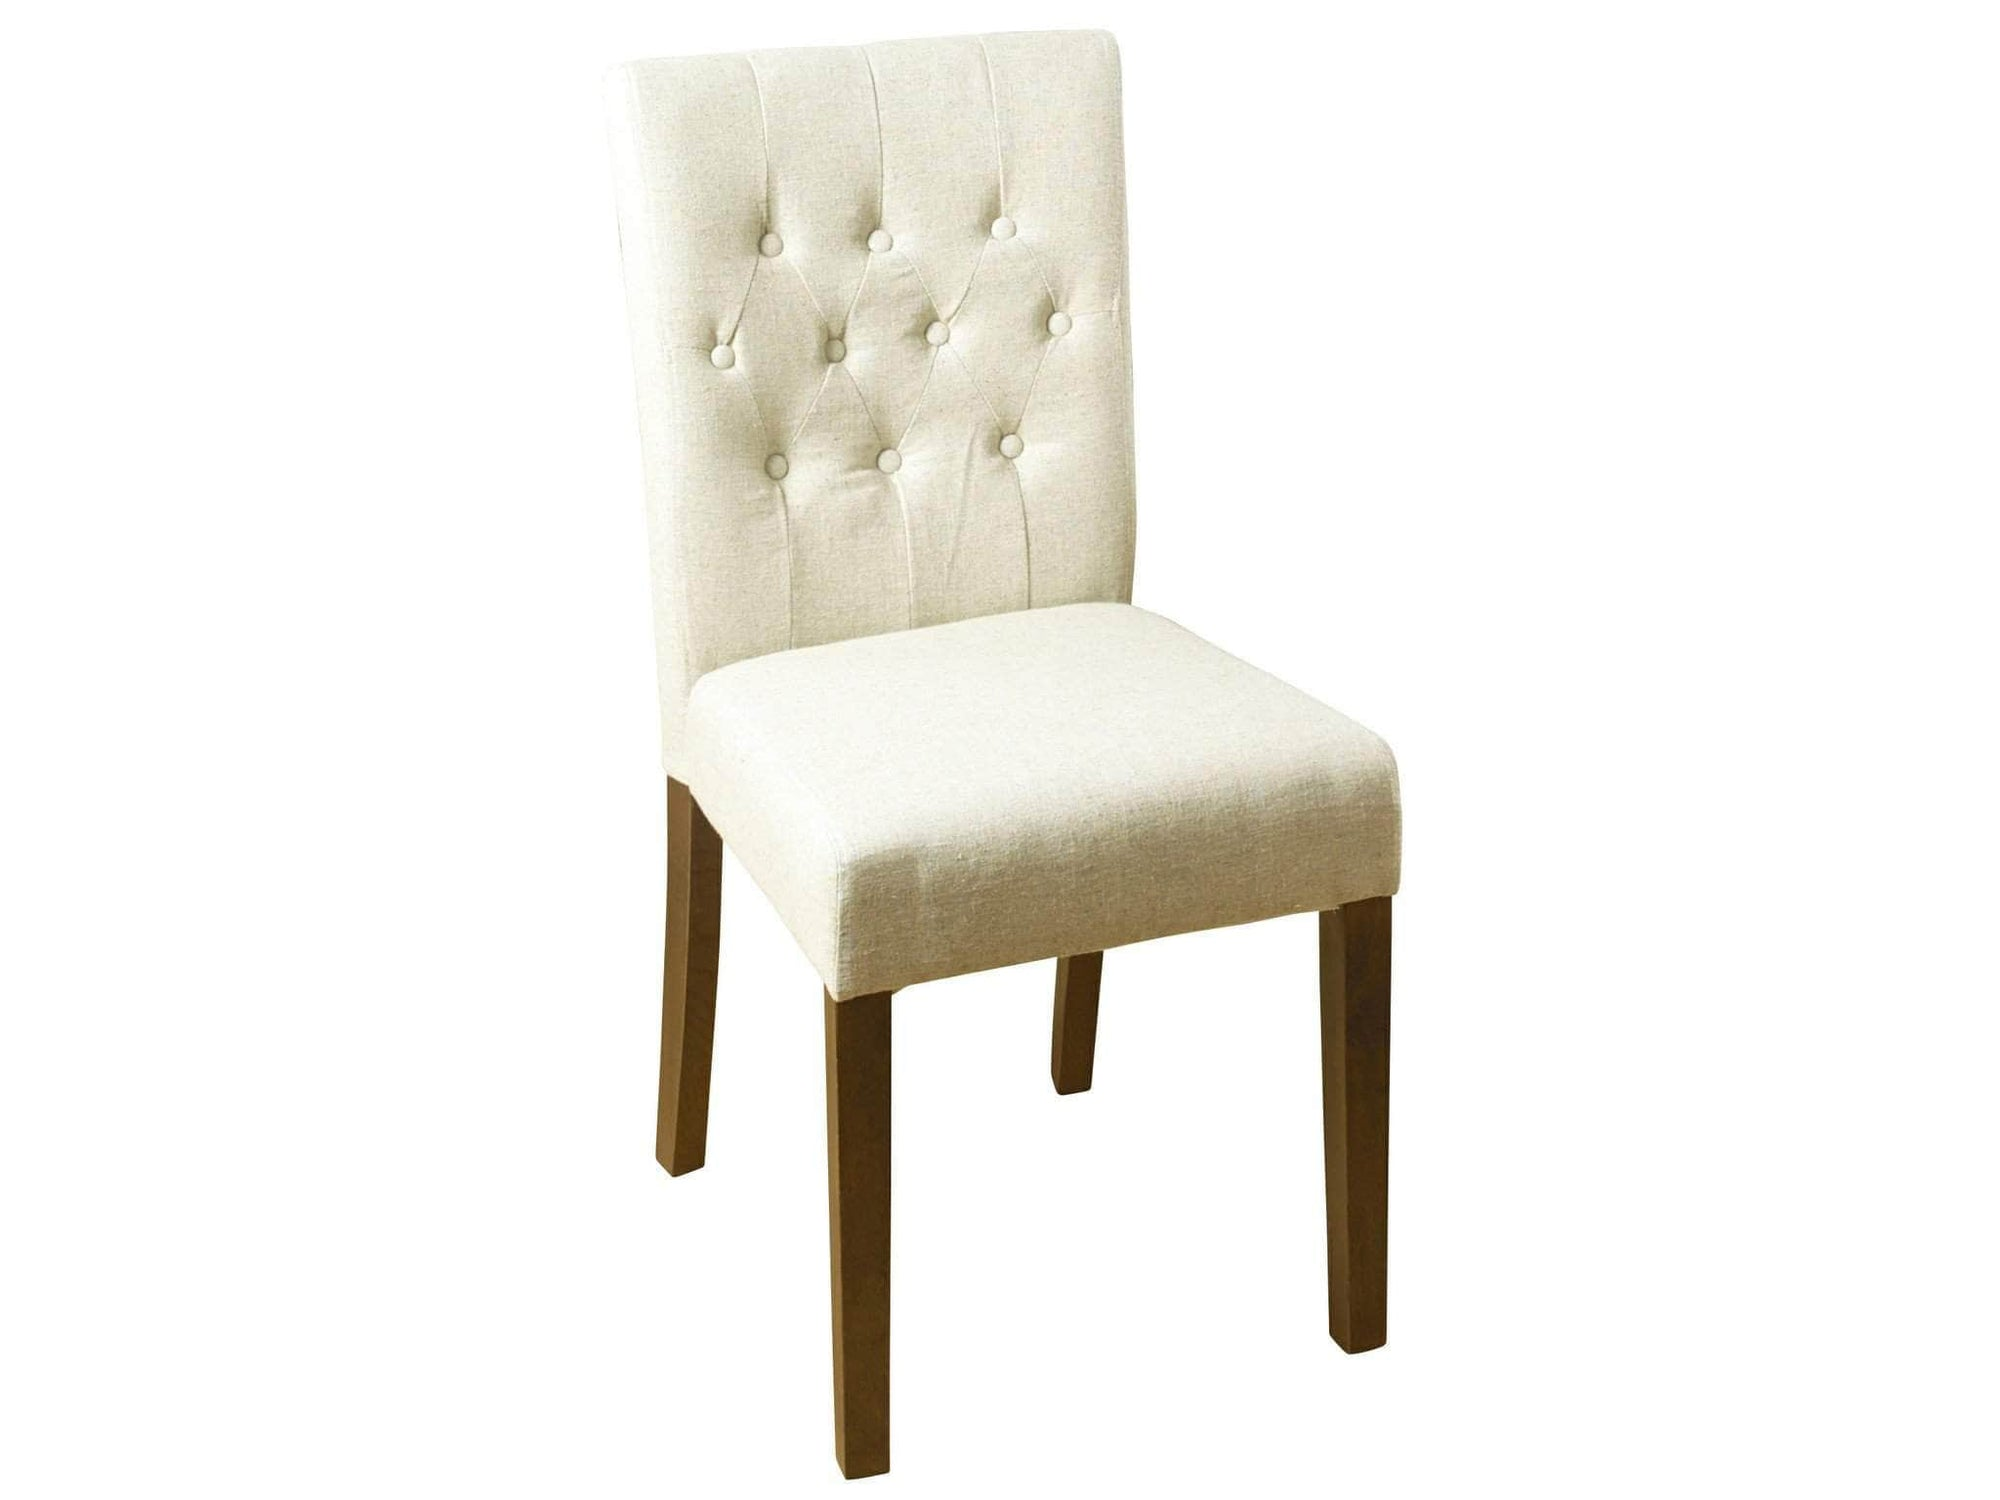 Linen upholstered dining chairs with walnut legs